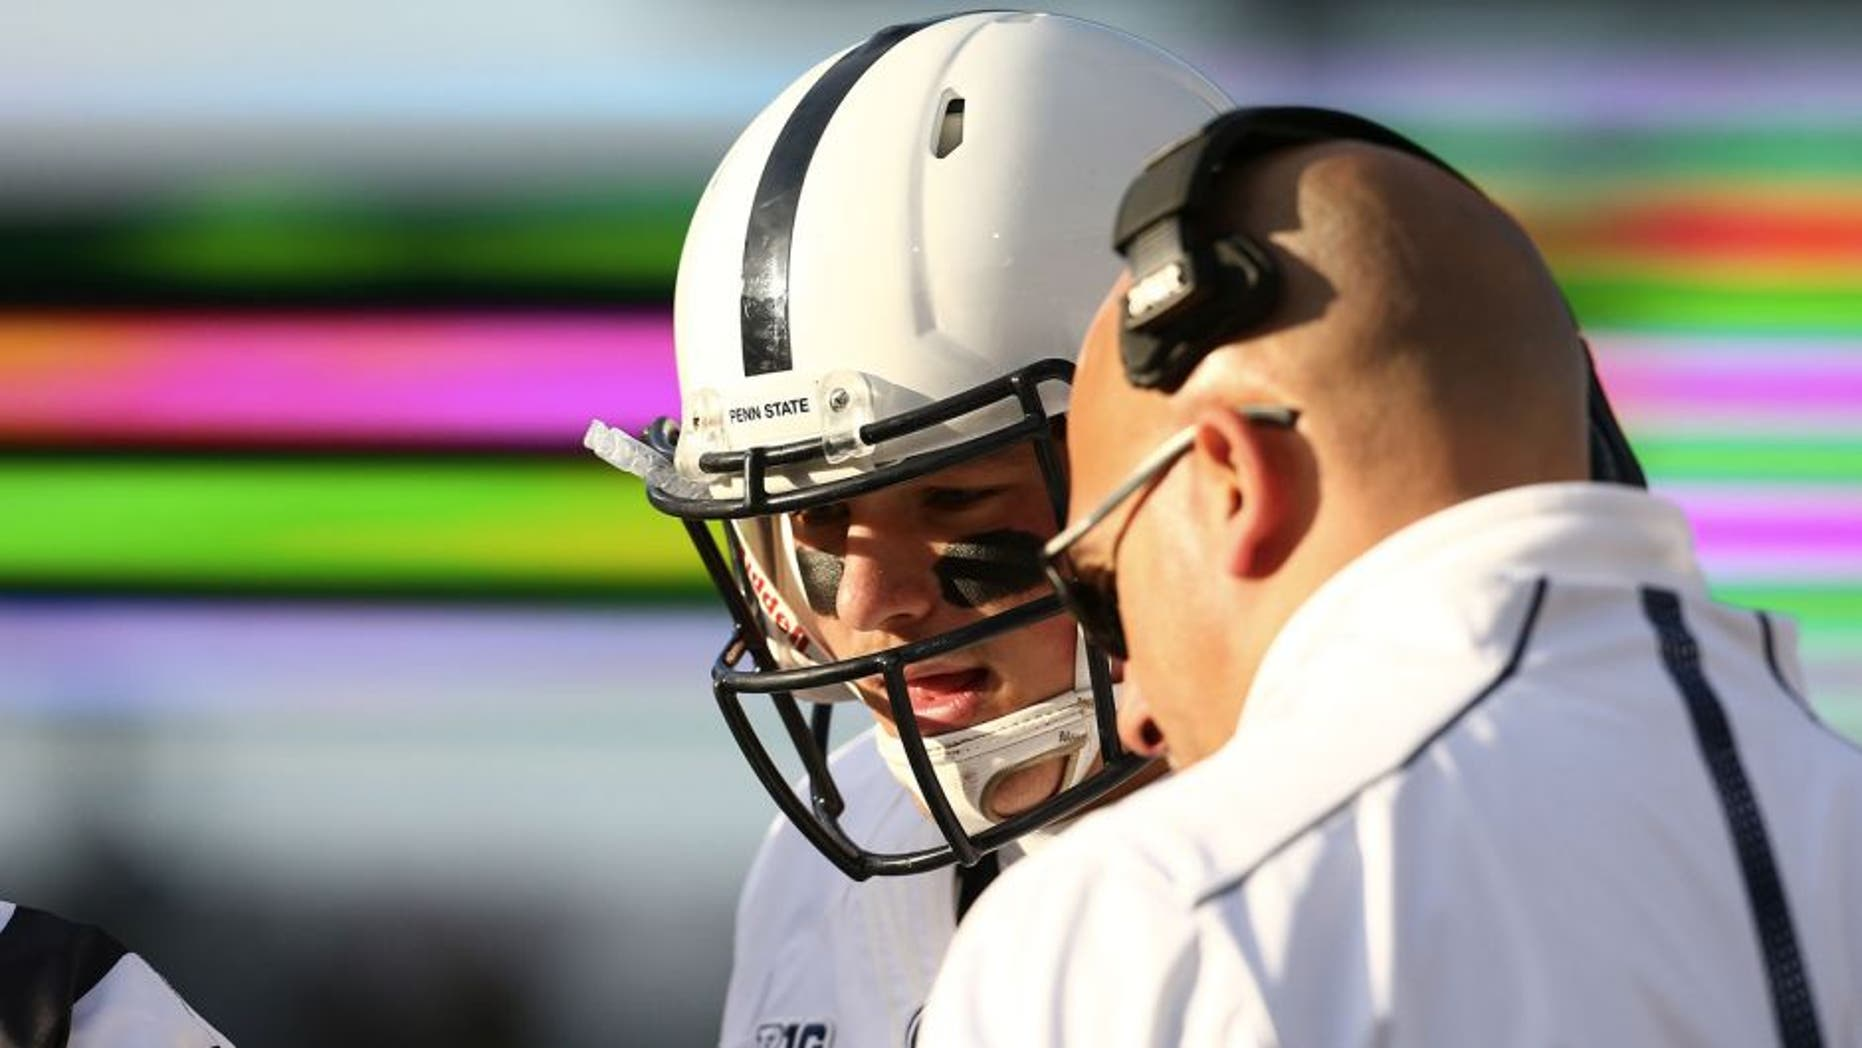 EAST LANSING, MI - NOVEMBER 28: Head coach James Franklin of the Penn State Nittany Lions talks with Christian Hackenberg #14 of the Penn State Nittany Lions on the sideline in the first quarter during the game against the Michigan State Spartans at Spartan Stadium on November 28, 2015 in East Lansing, Michigan. (Photo by Rey Del Rio/Getty Images)